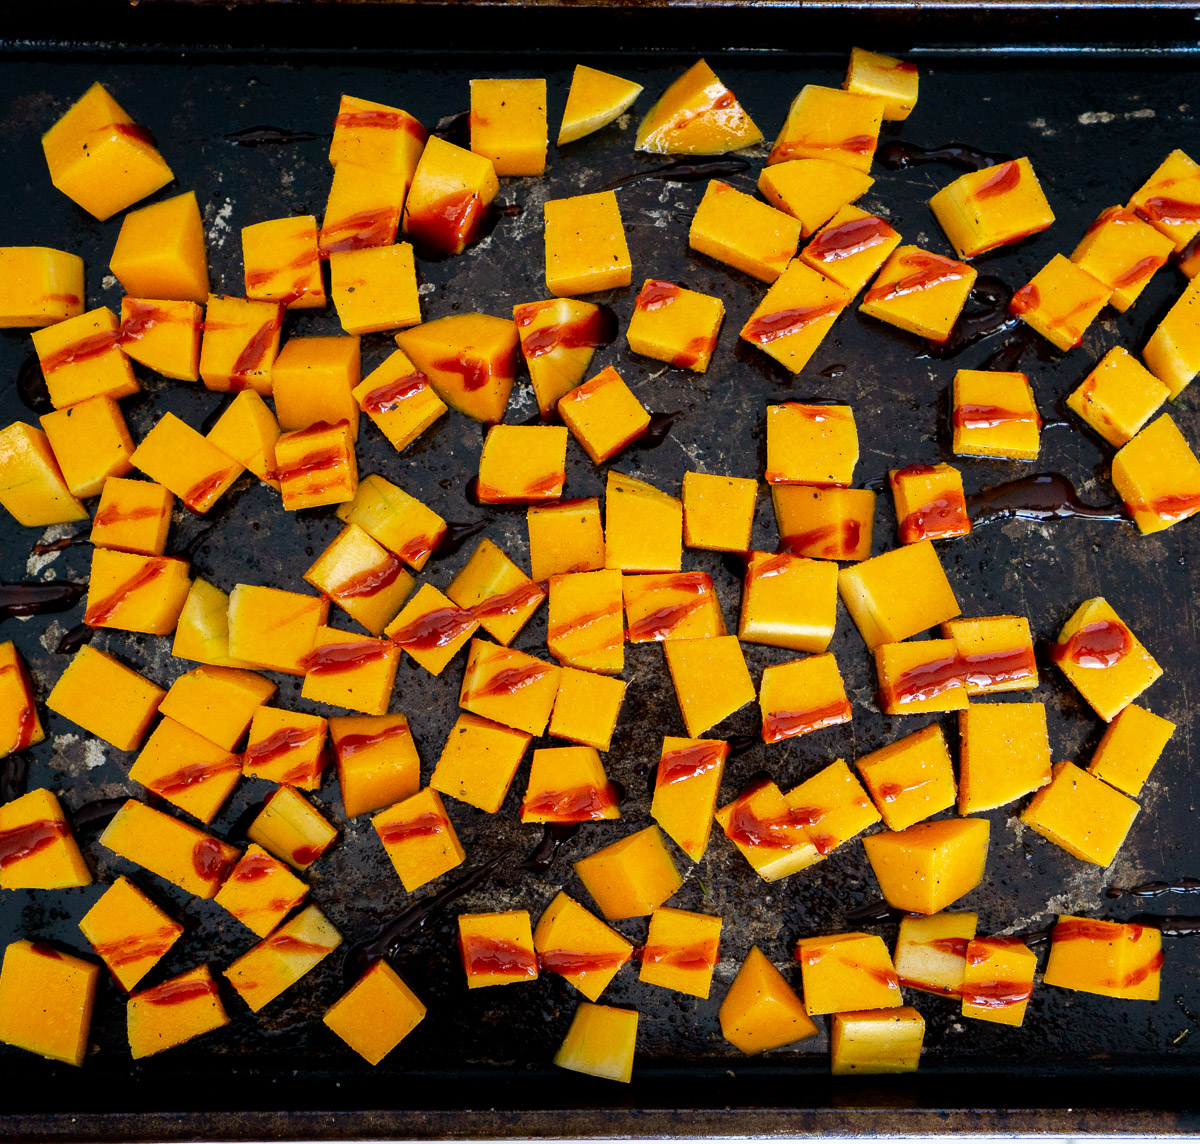 cubed butternut squash with gochujang sauce drizzled